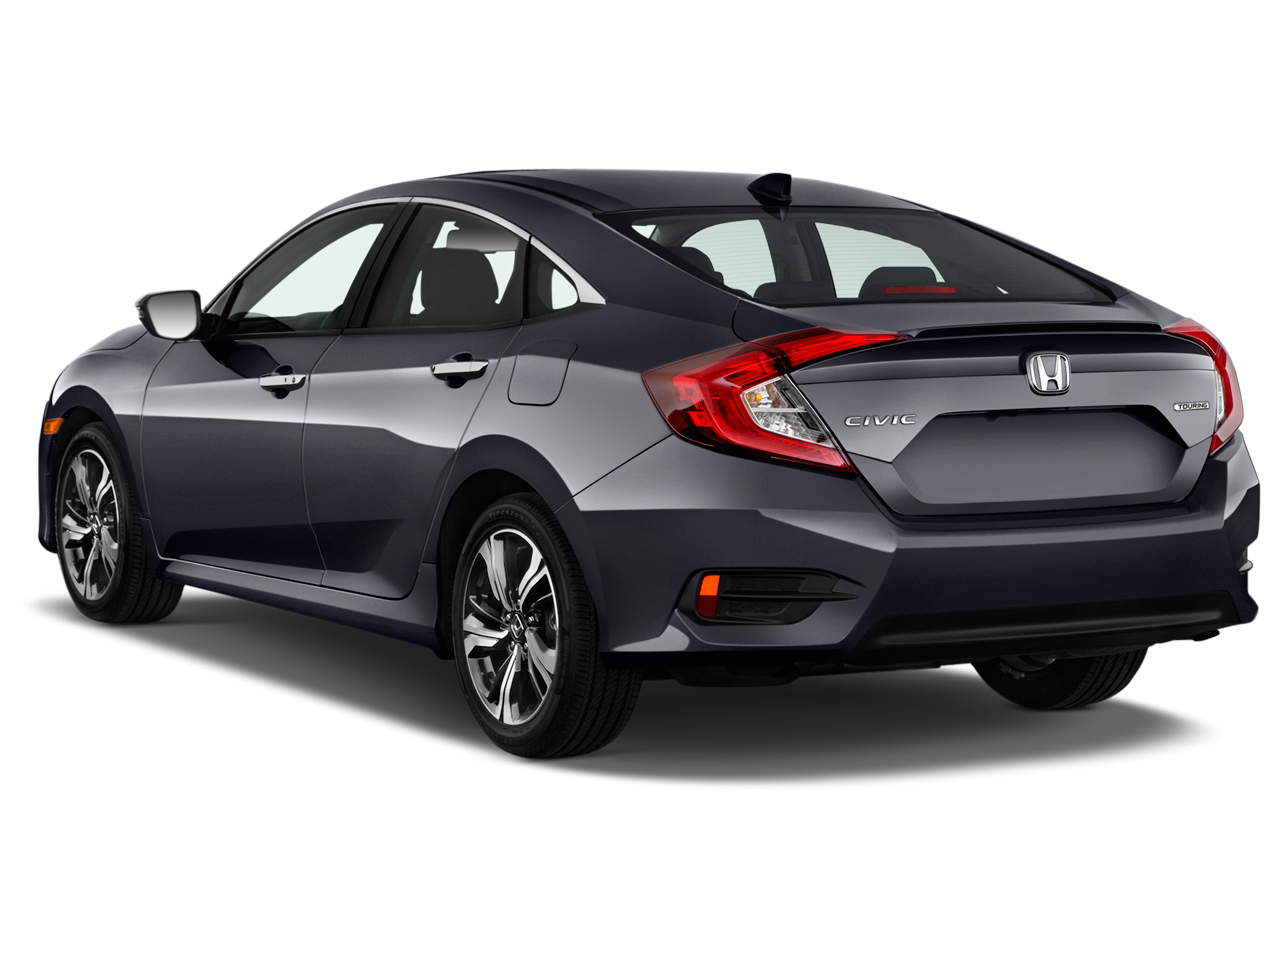 Honda Civic 2019, Saudi Arabia